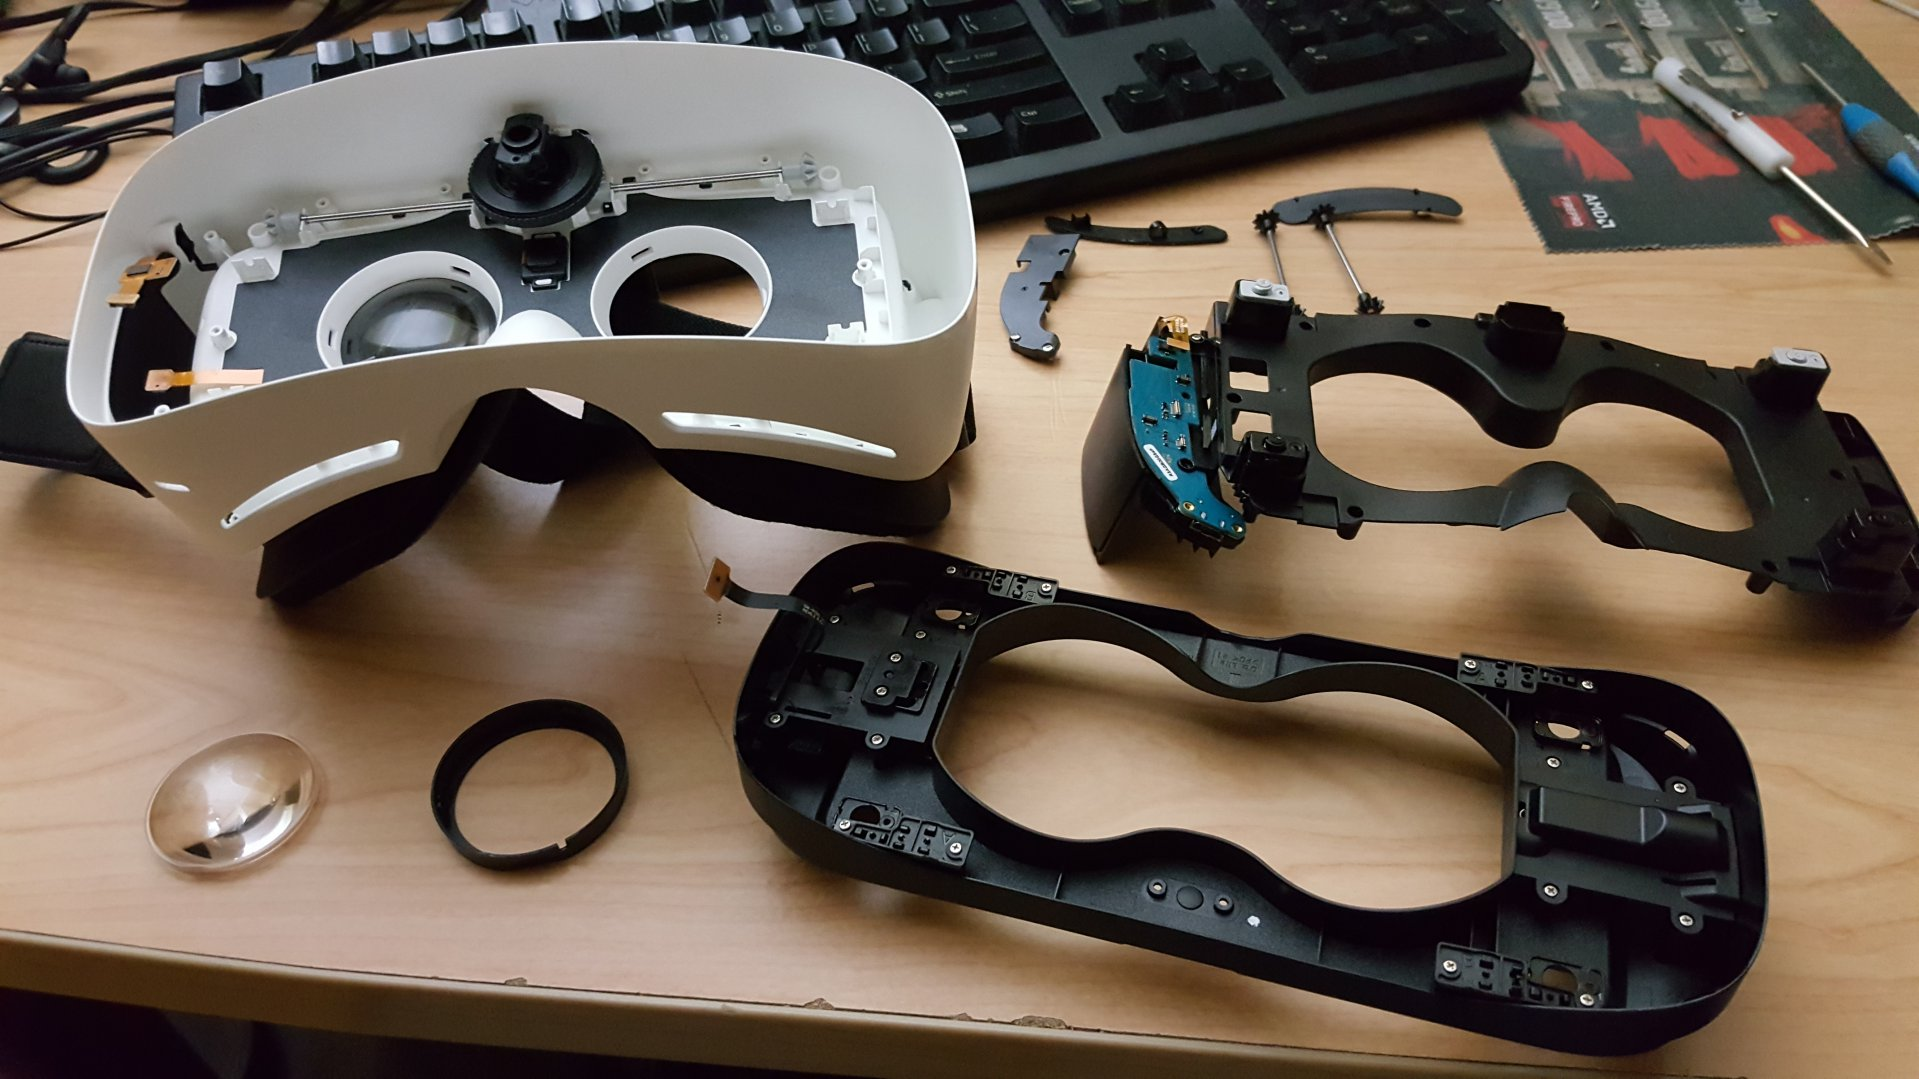 consumer gear vr teardown reveals easily replaceable